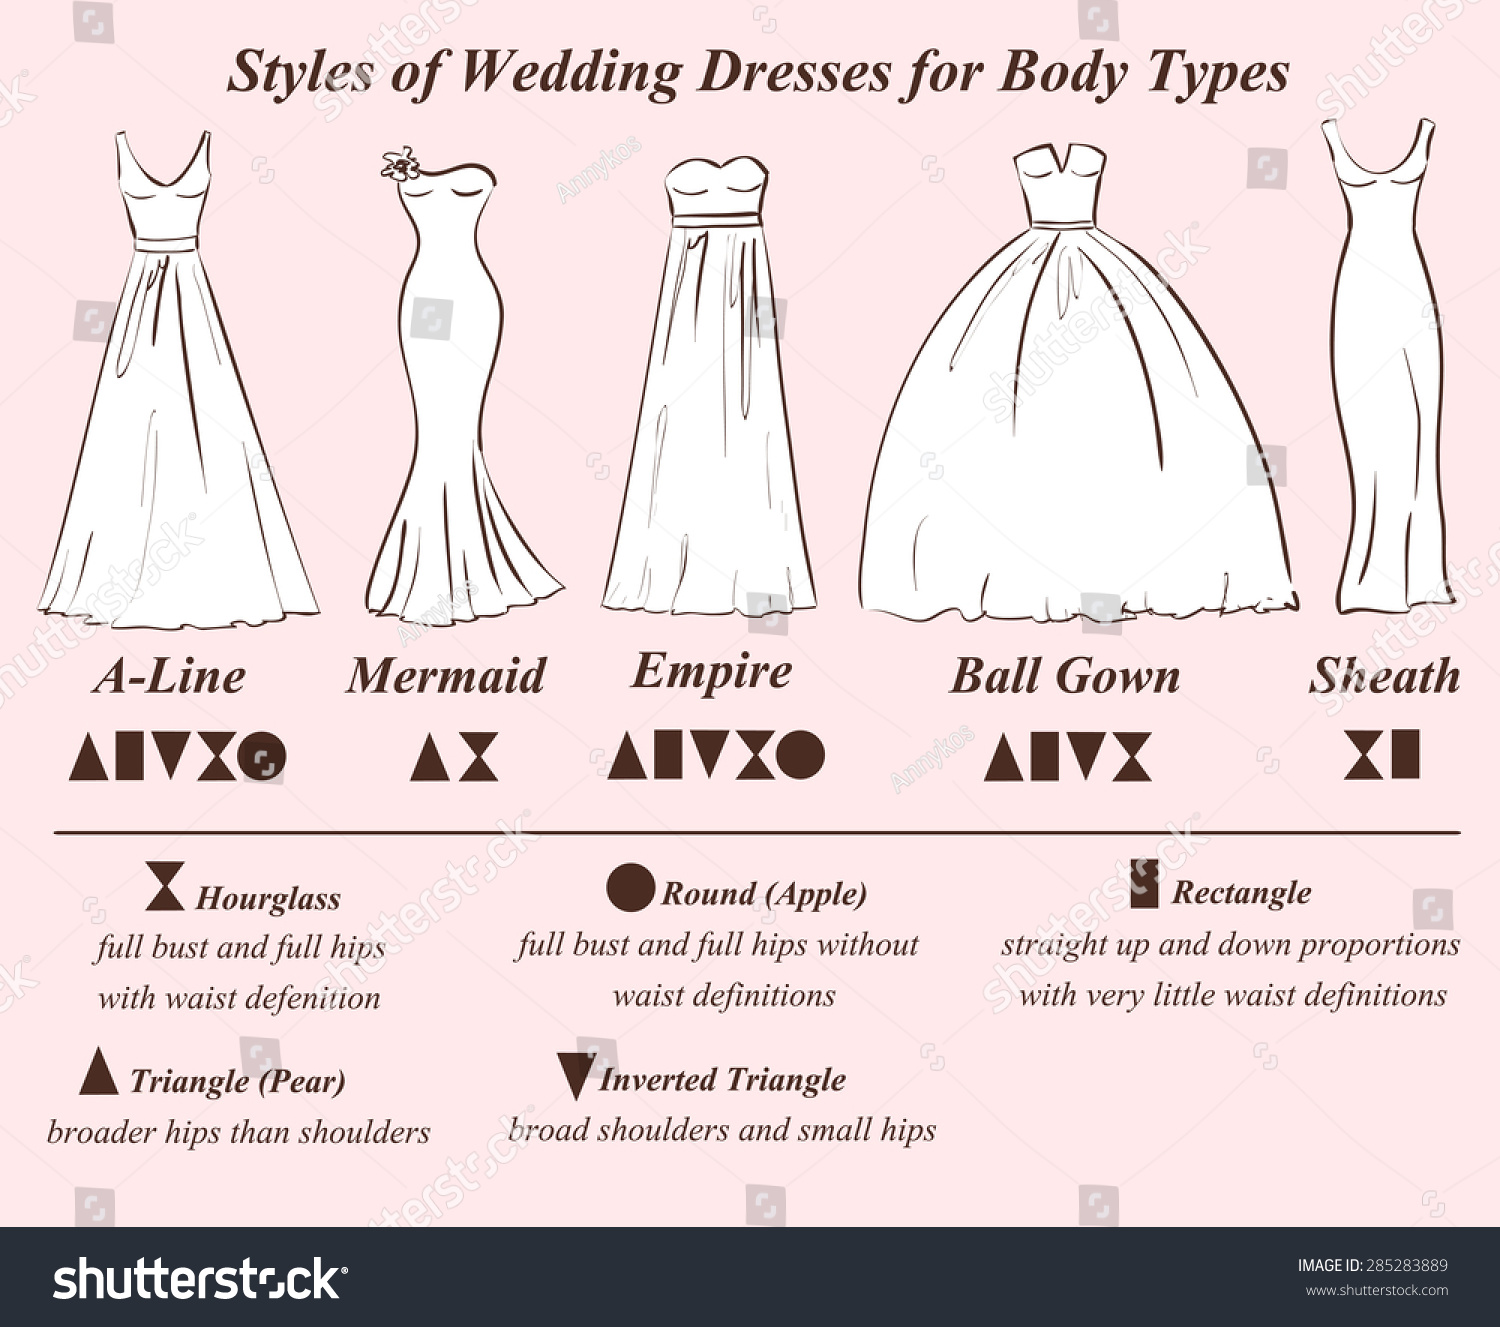 Types Of Wedding Gowns For Body Types - Lady Wedding Dresses